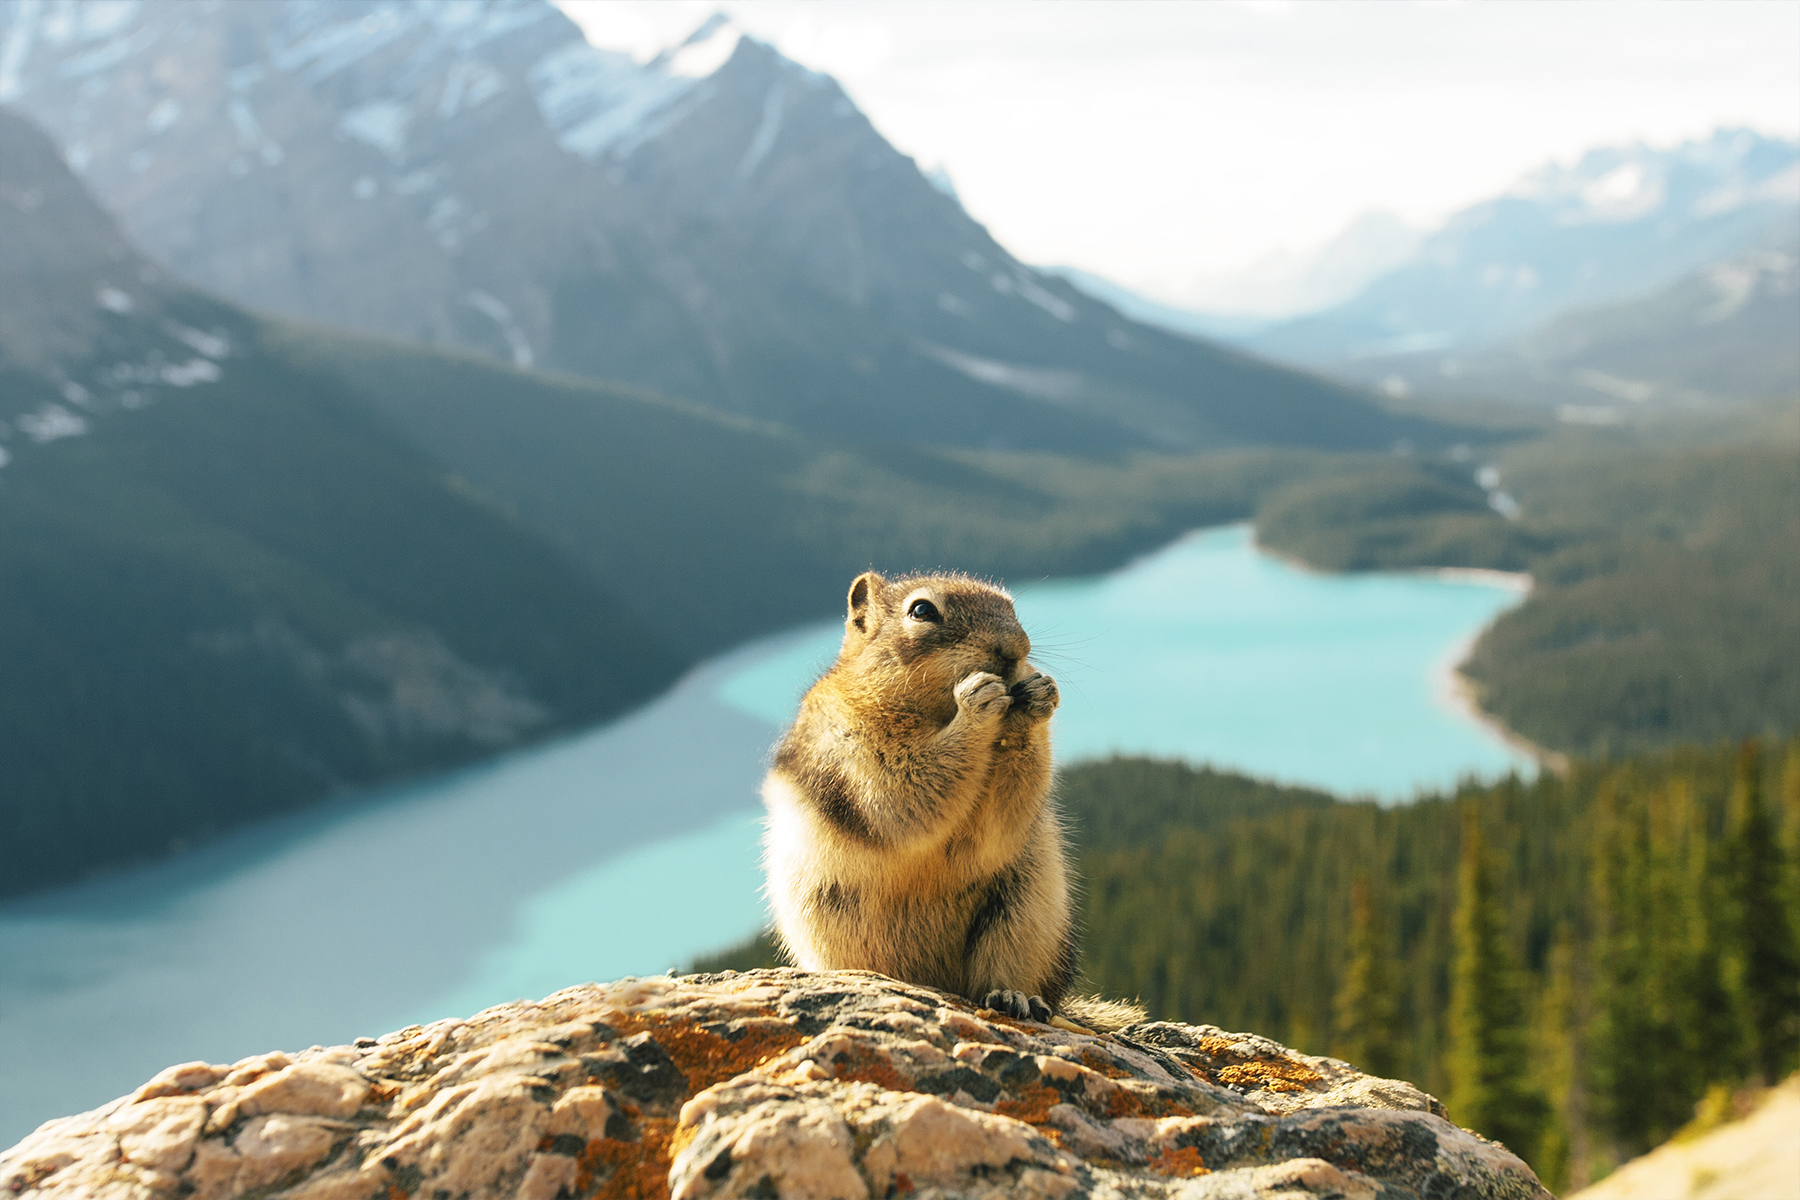 Peyto-lake-icefields-parkway-alberta-canada-que-hacer-5